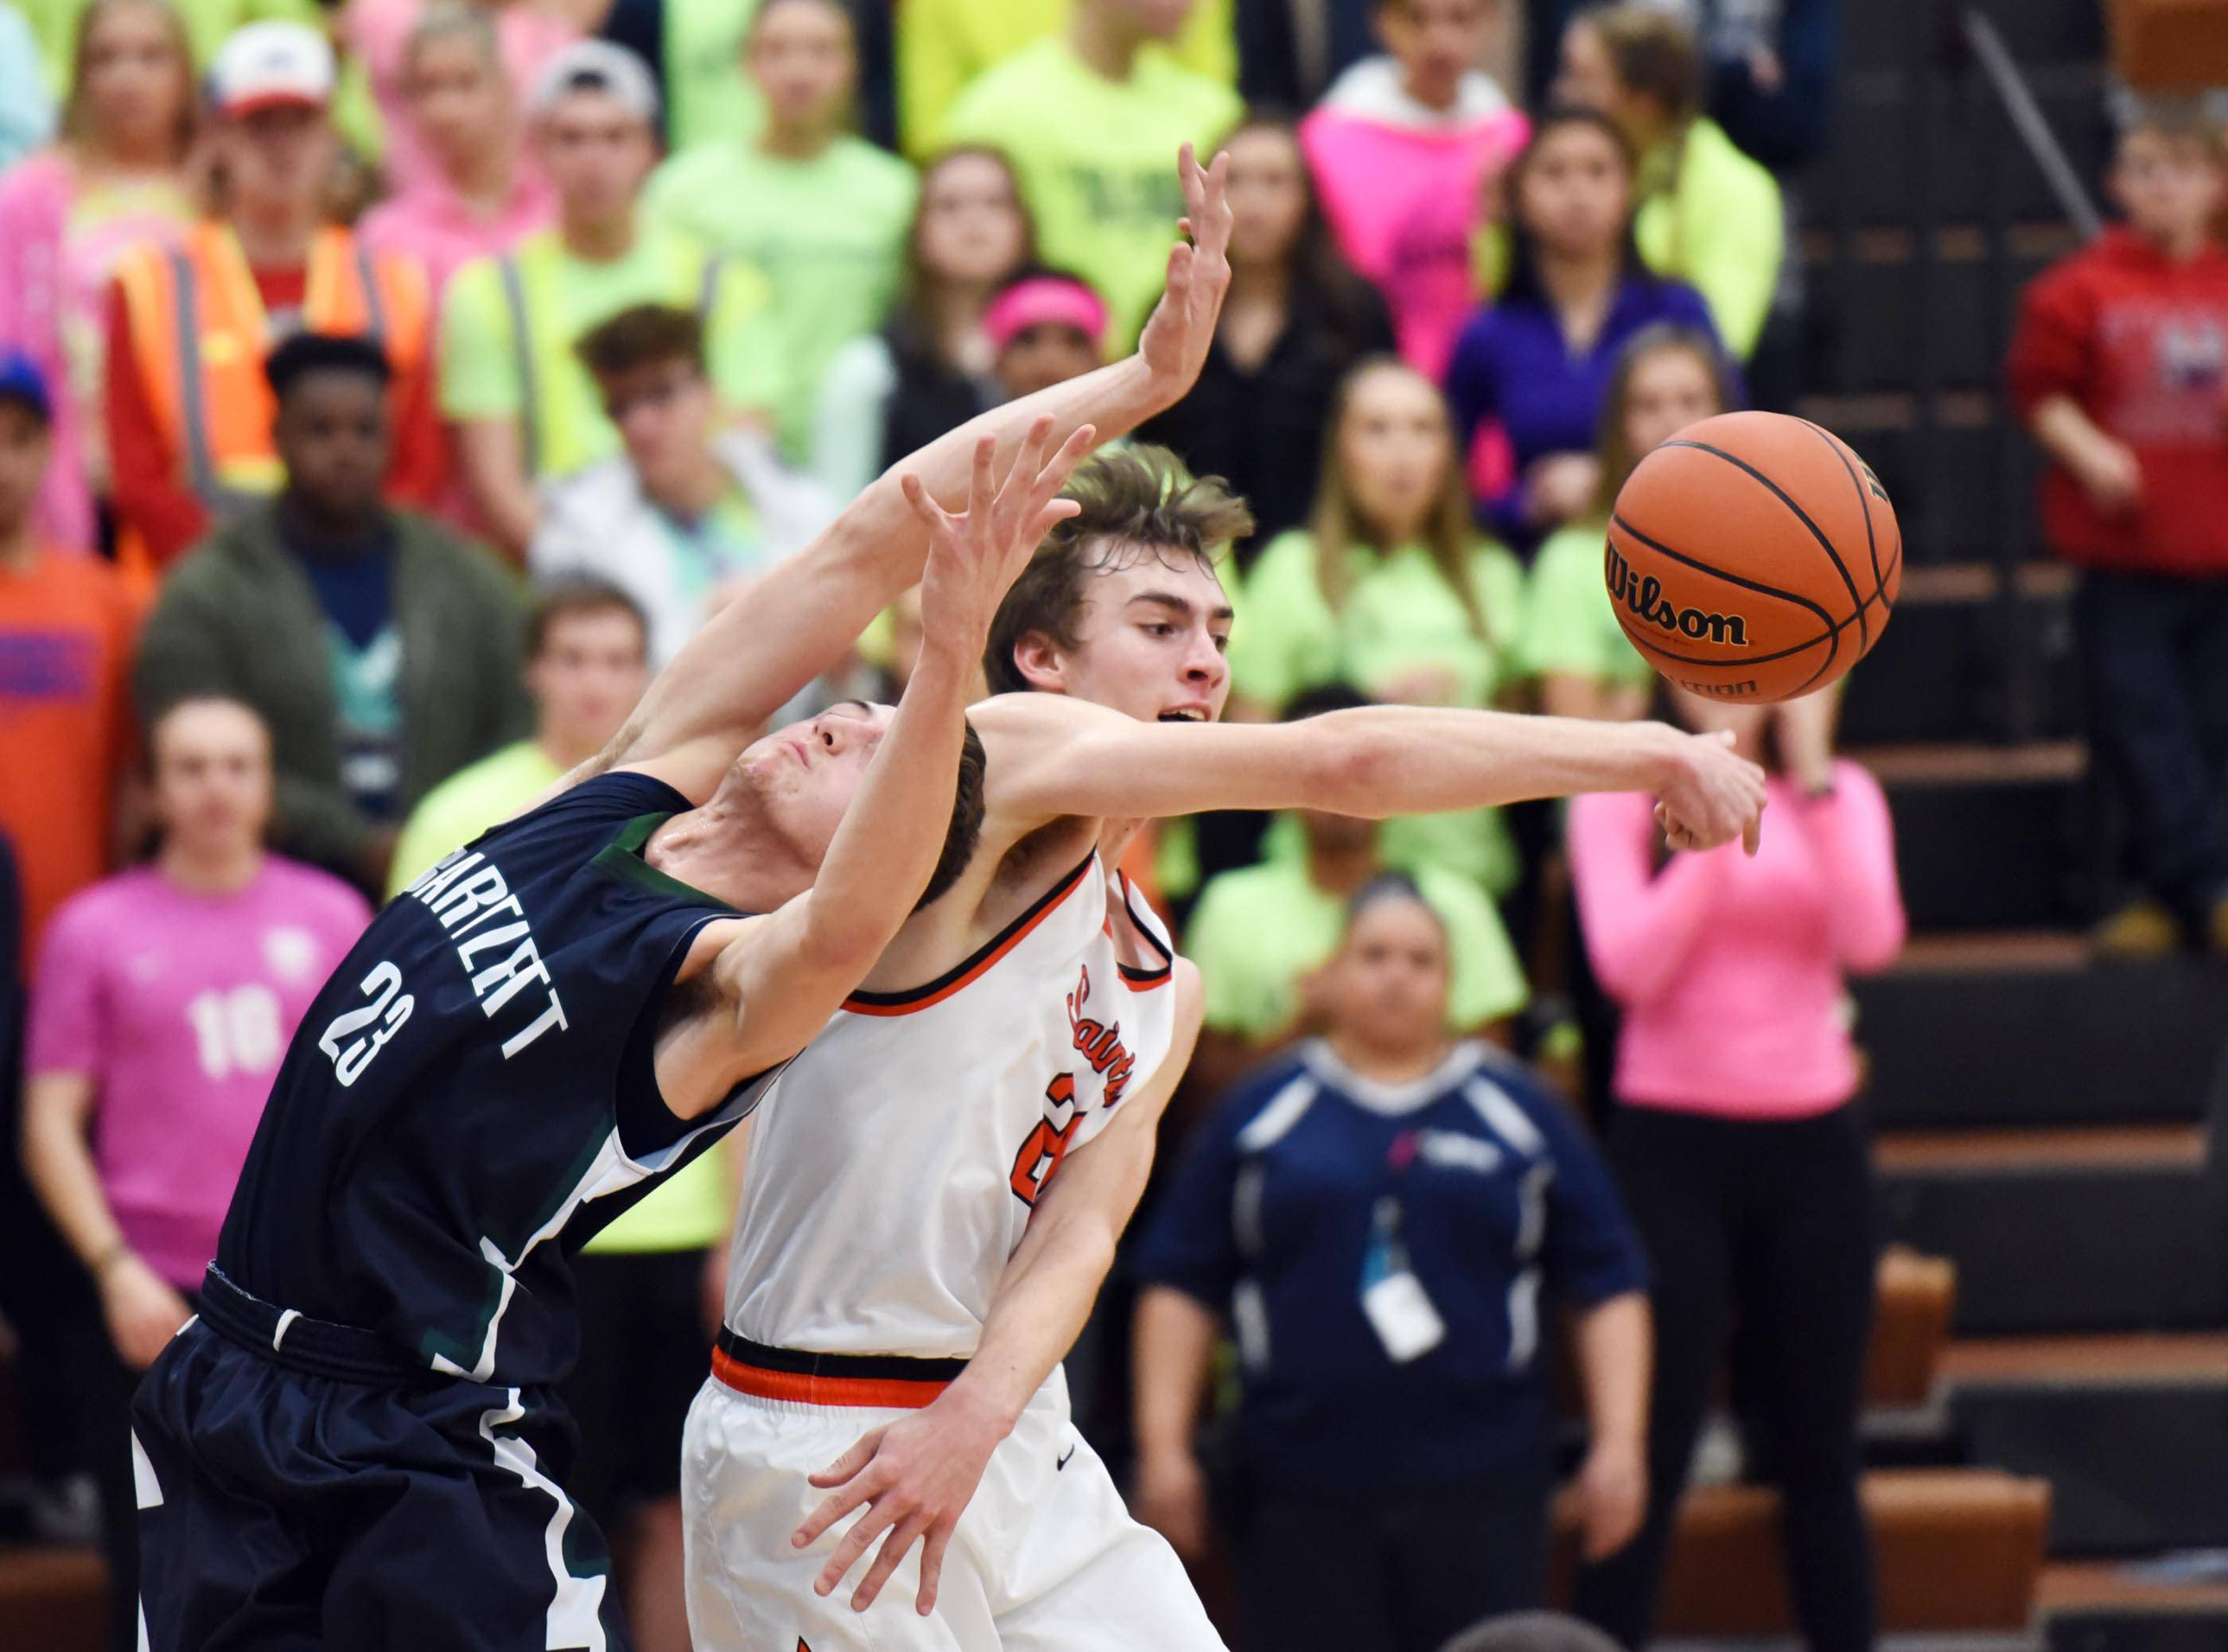 St. Charles East's Wade Kyle swats the ball away from  Bartlett's Ben Tompson Wednesday at the boys basketball regional tournament game in Elgin.